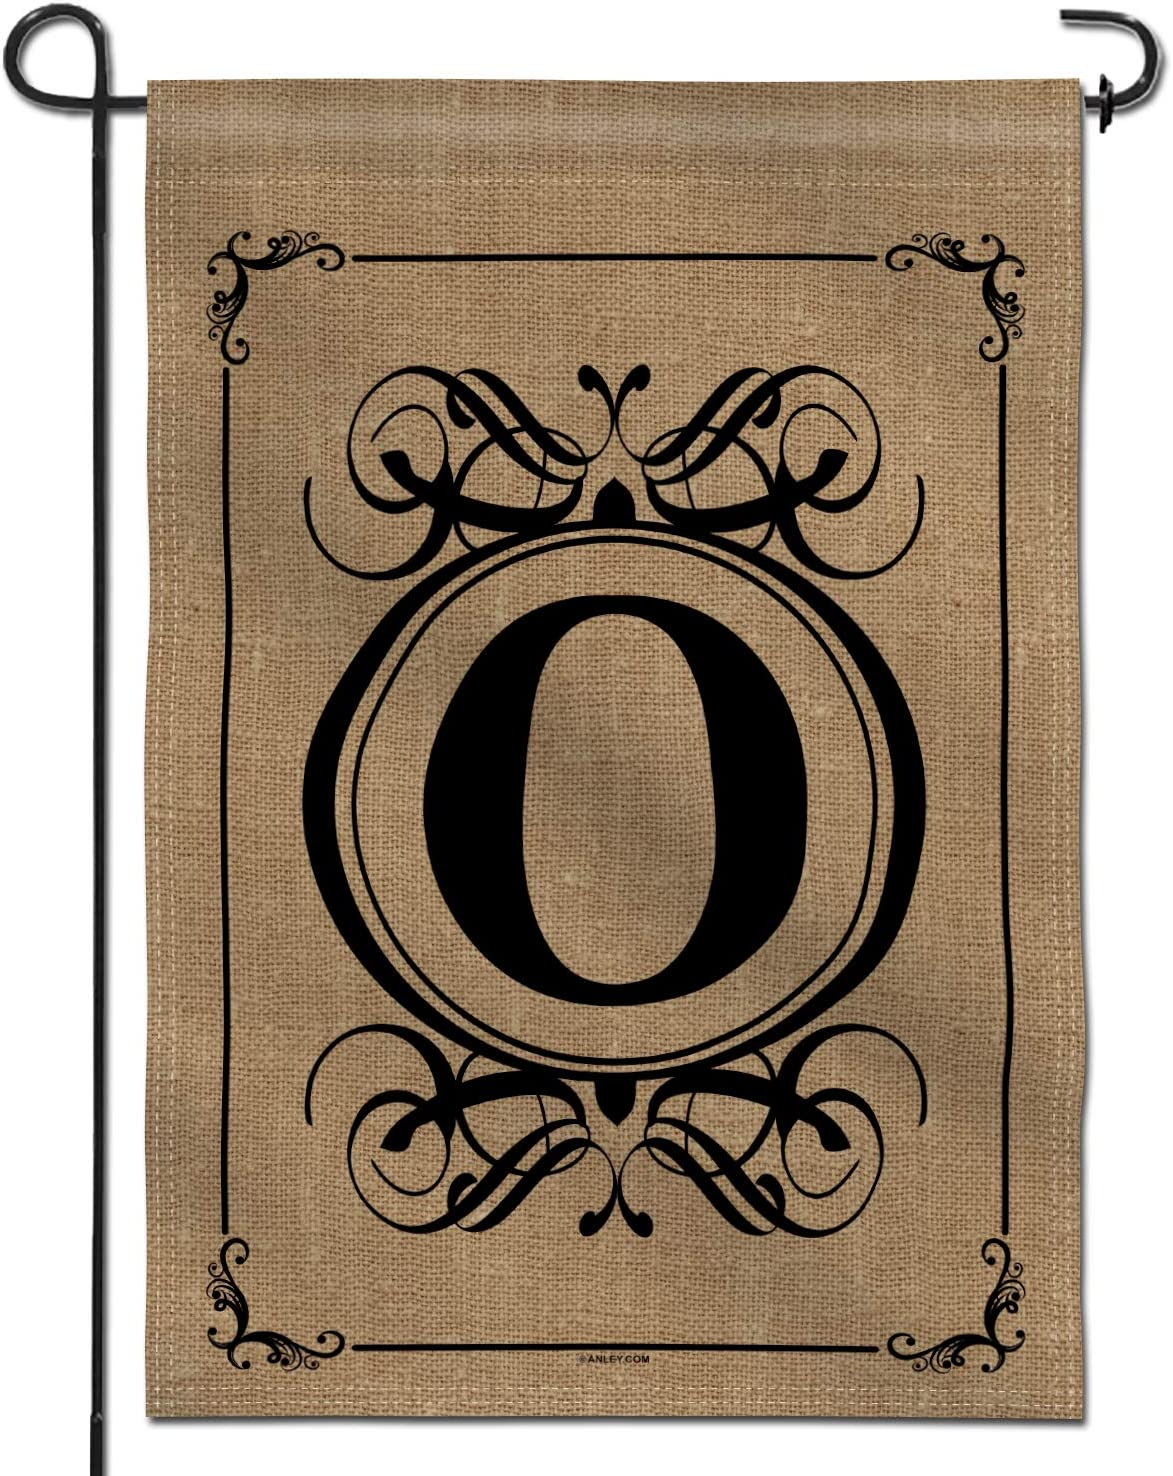 Anley Classic Monogram Letter O Garden Flag, Double Sided Family Last Name Initial Yard Flags - Personalized Welcome Home Decor - Weather Resistant & Double Stitched - 18 x 12.5 Inch